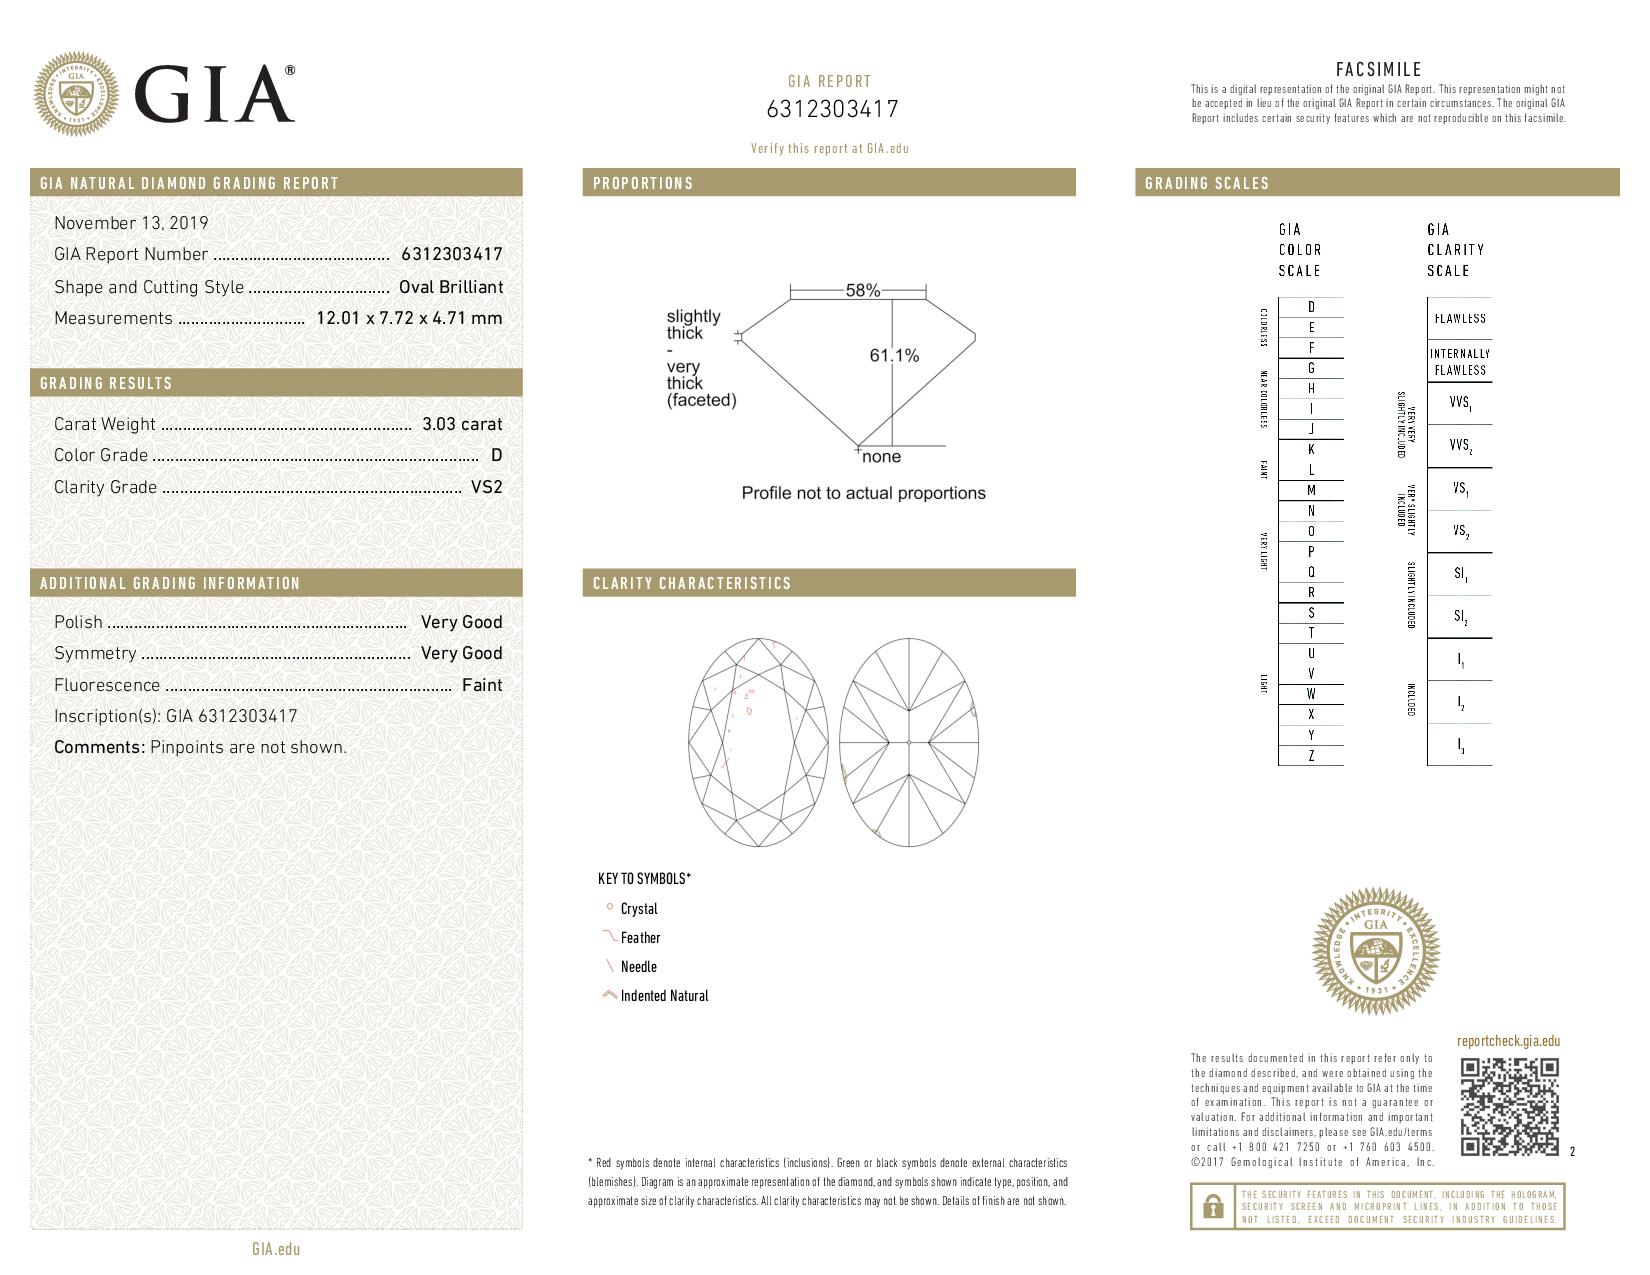 This is a 3.03 carat oval shape, D color, VS2 clarity natural diamond accompanied by a GIA grading report.